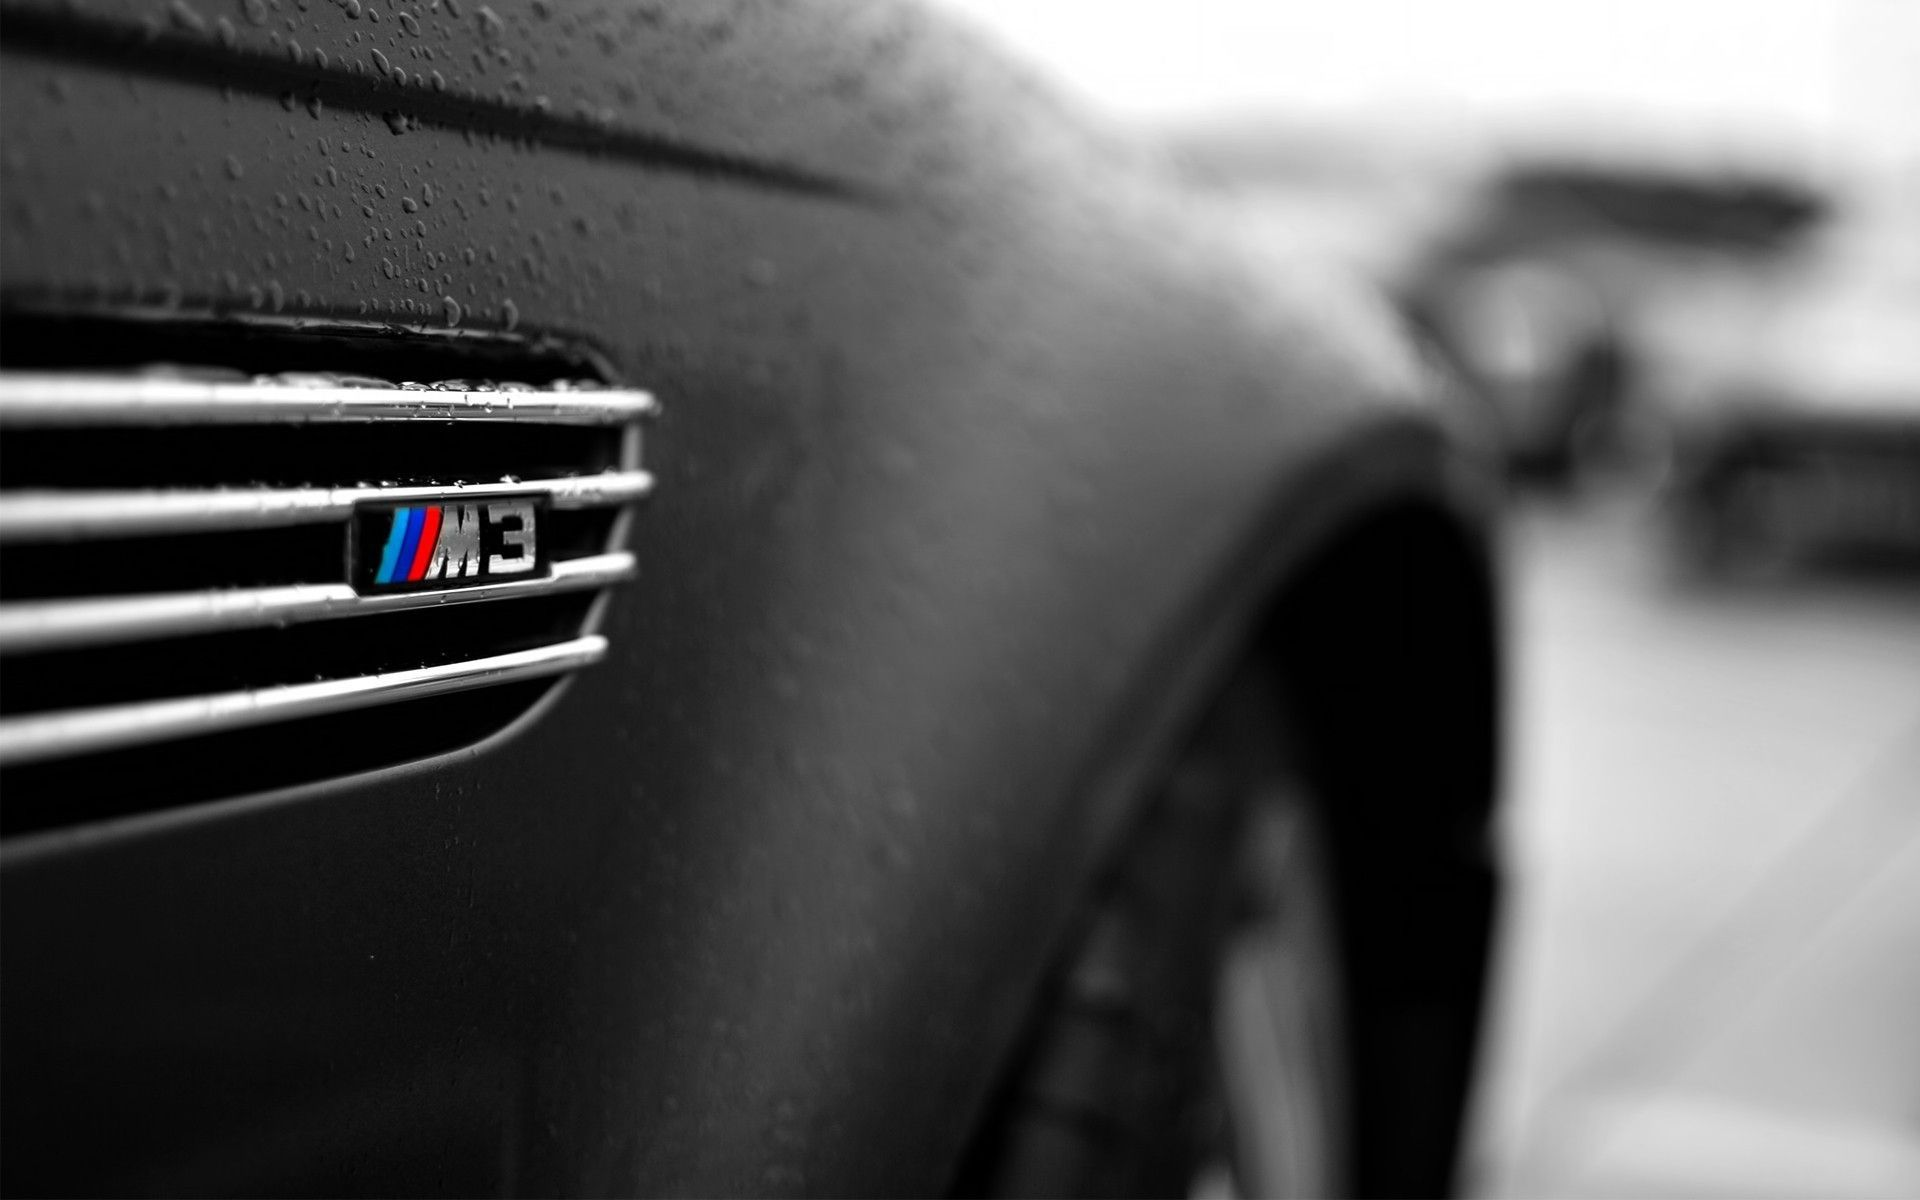 Bmw M3 Wallpapers Full Hd Wallpaper Search Vehicle Bmw M3